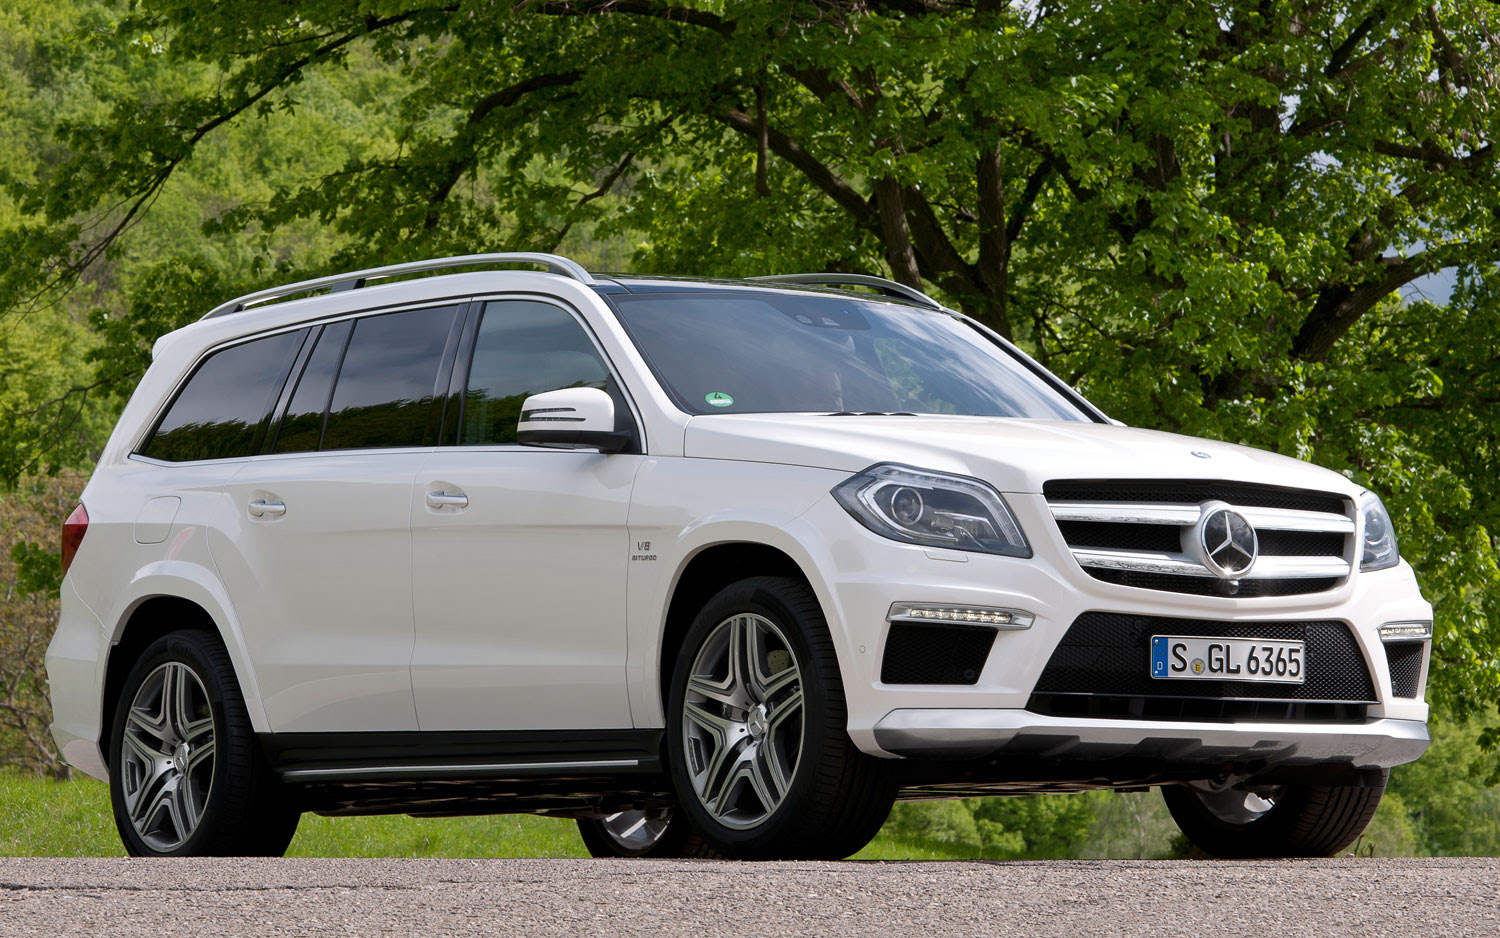 2013 Mercedes-Benz GL63 AMG Debuts With 550-HP Twin-Turbo V-8